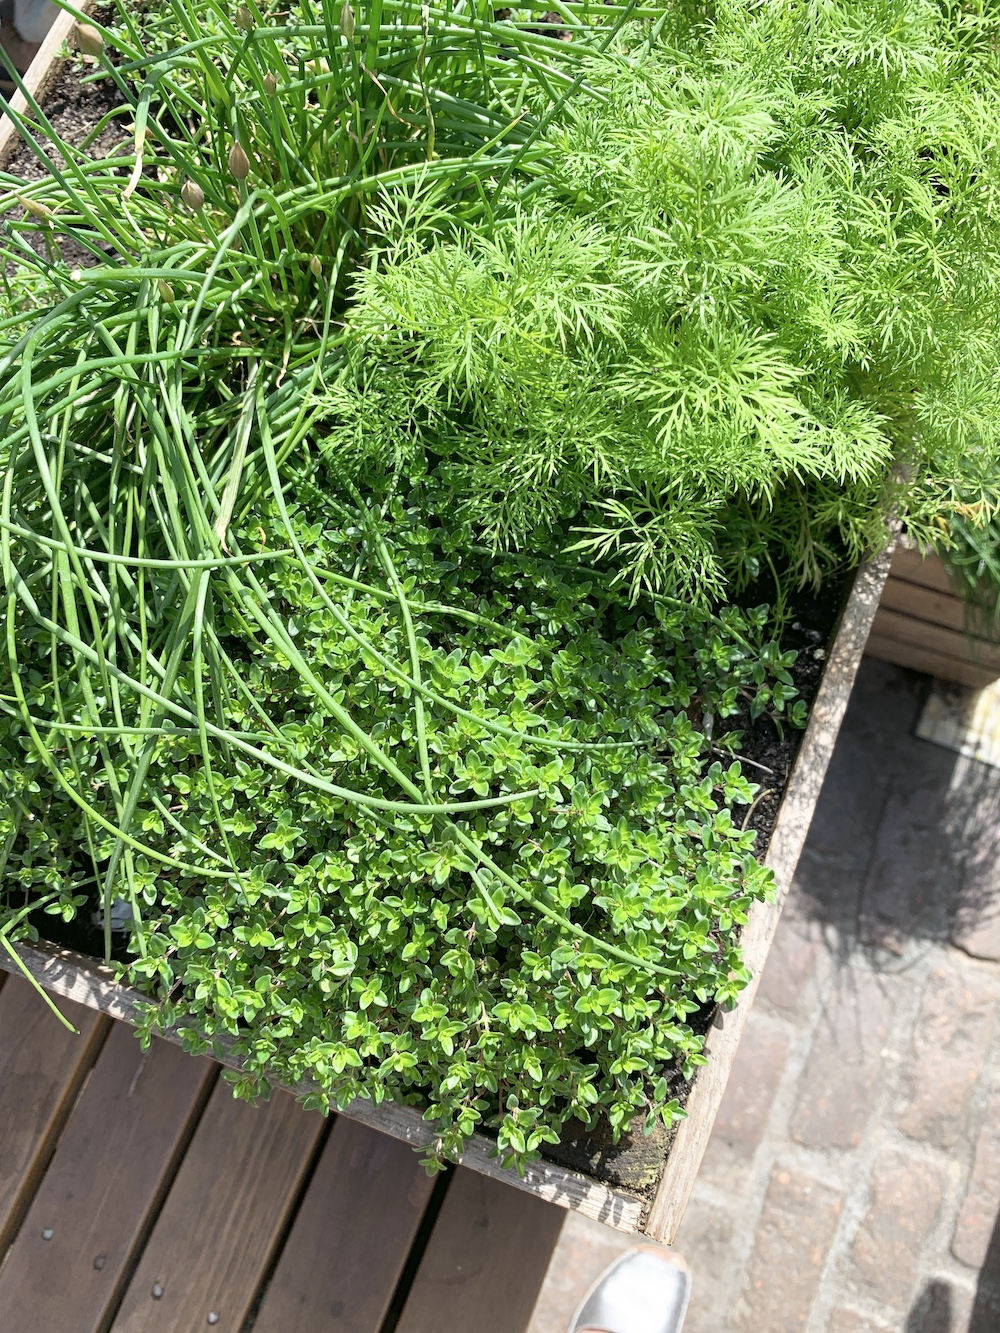 Crate Gardening for Small Spaces Crate Full of Herbs #Garden #Gardening #SmallSpace #SmallSpaceGardening #ContainerGardening #VegetableGarden #HerbGarden #PorchGarden #PatioGarden